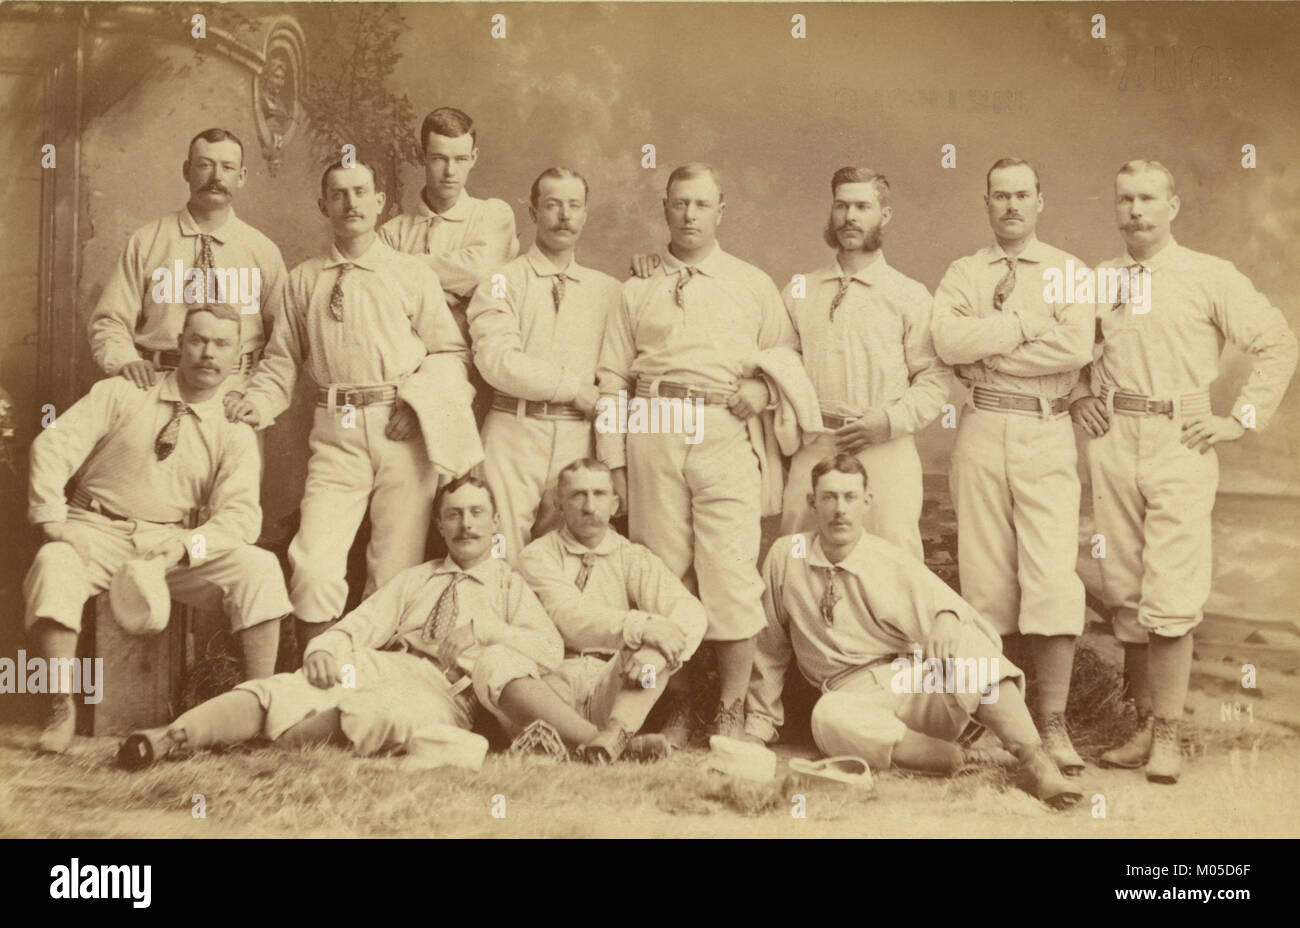 Neuf 1882 baseball métropolitain Photo Stock